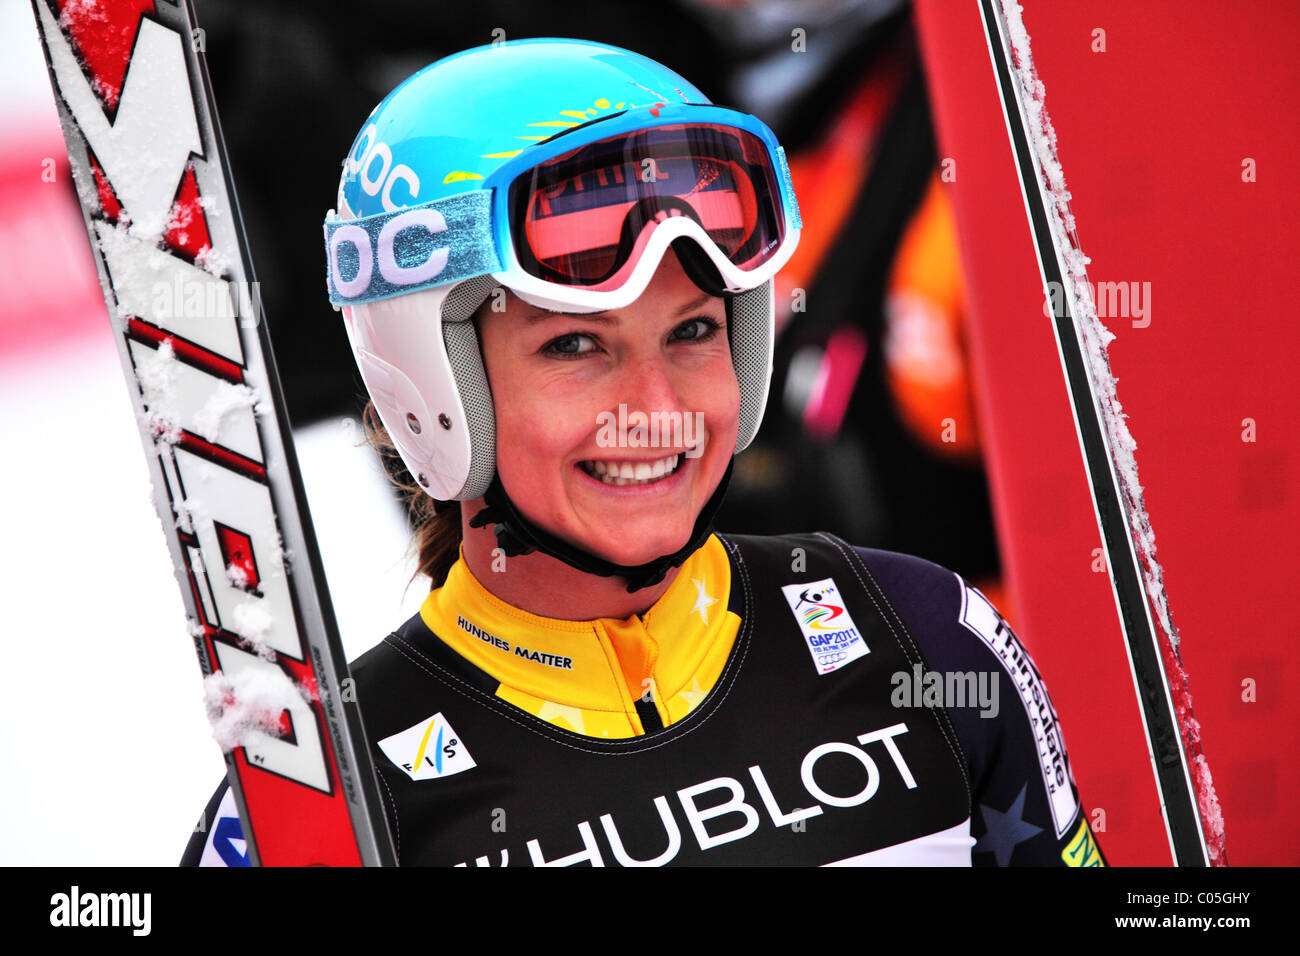 Julia Mancuso (USA) at the FIS Alpine World Ski Championships in Garmisch-Partenkirchen 2011 - Stock Image